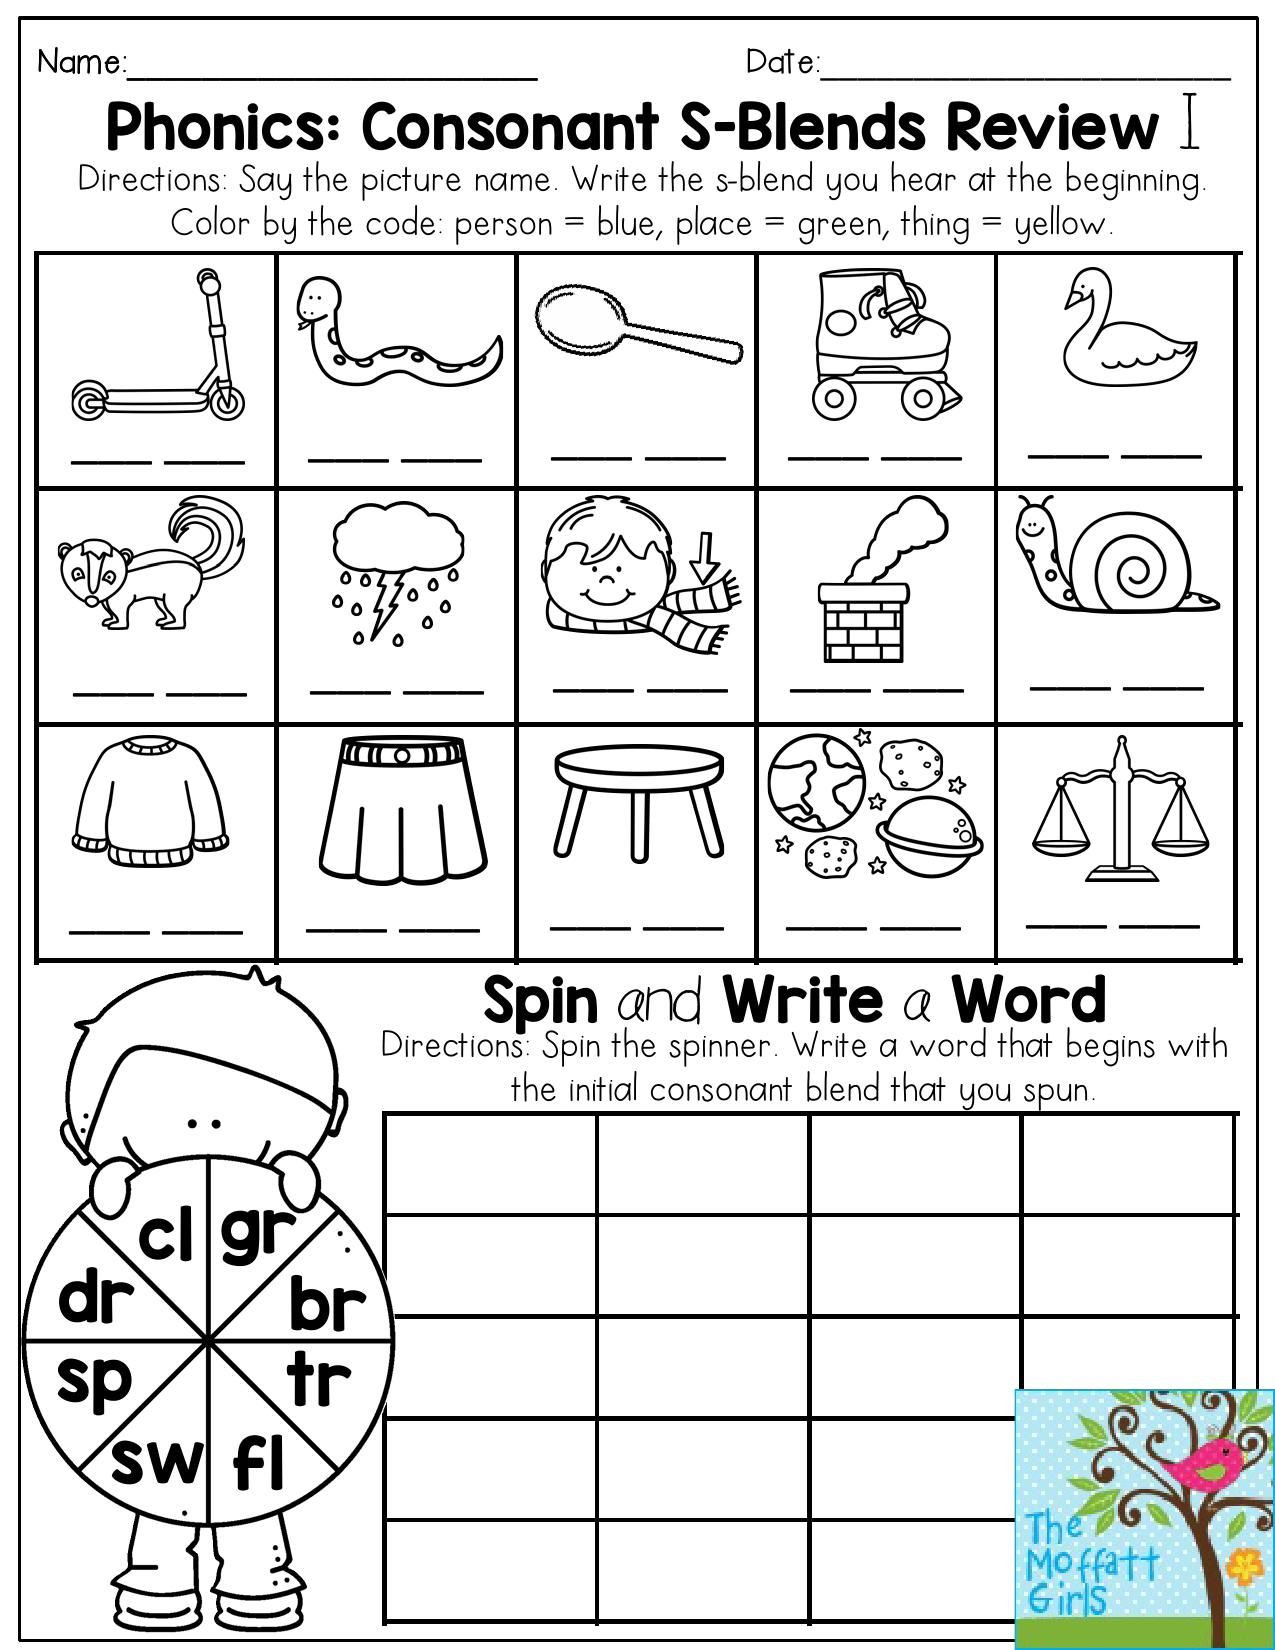 Consonant Blends Worksheets 3rd Grade Phonics Consonant S Blends Review Write the S Blend that